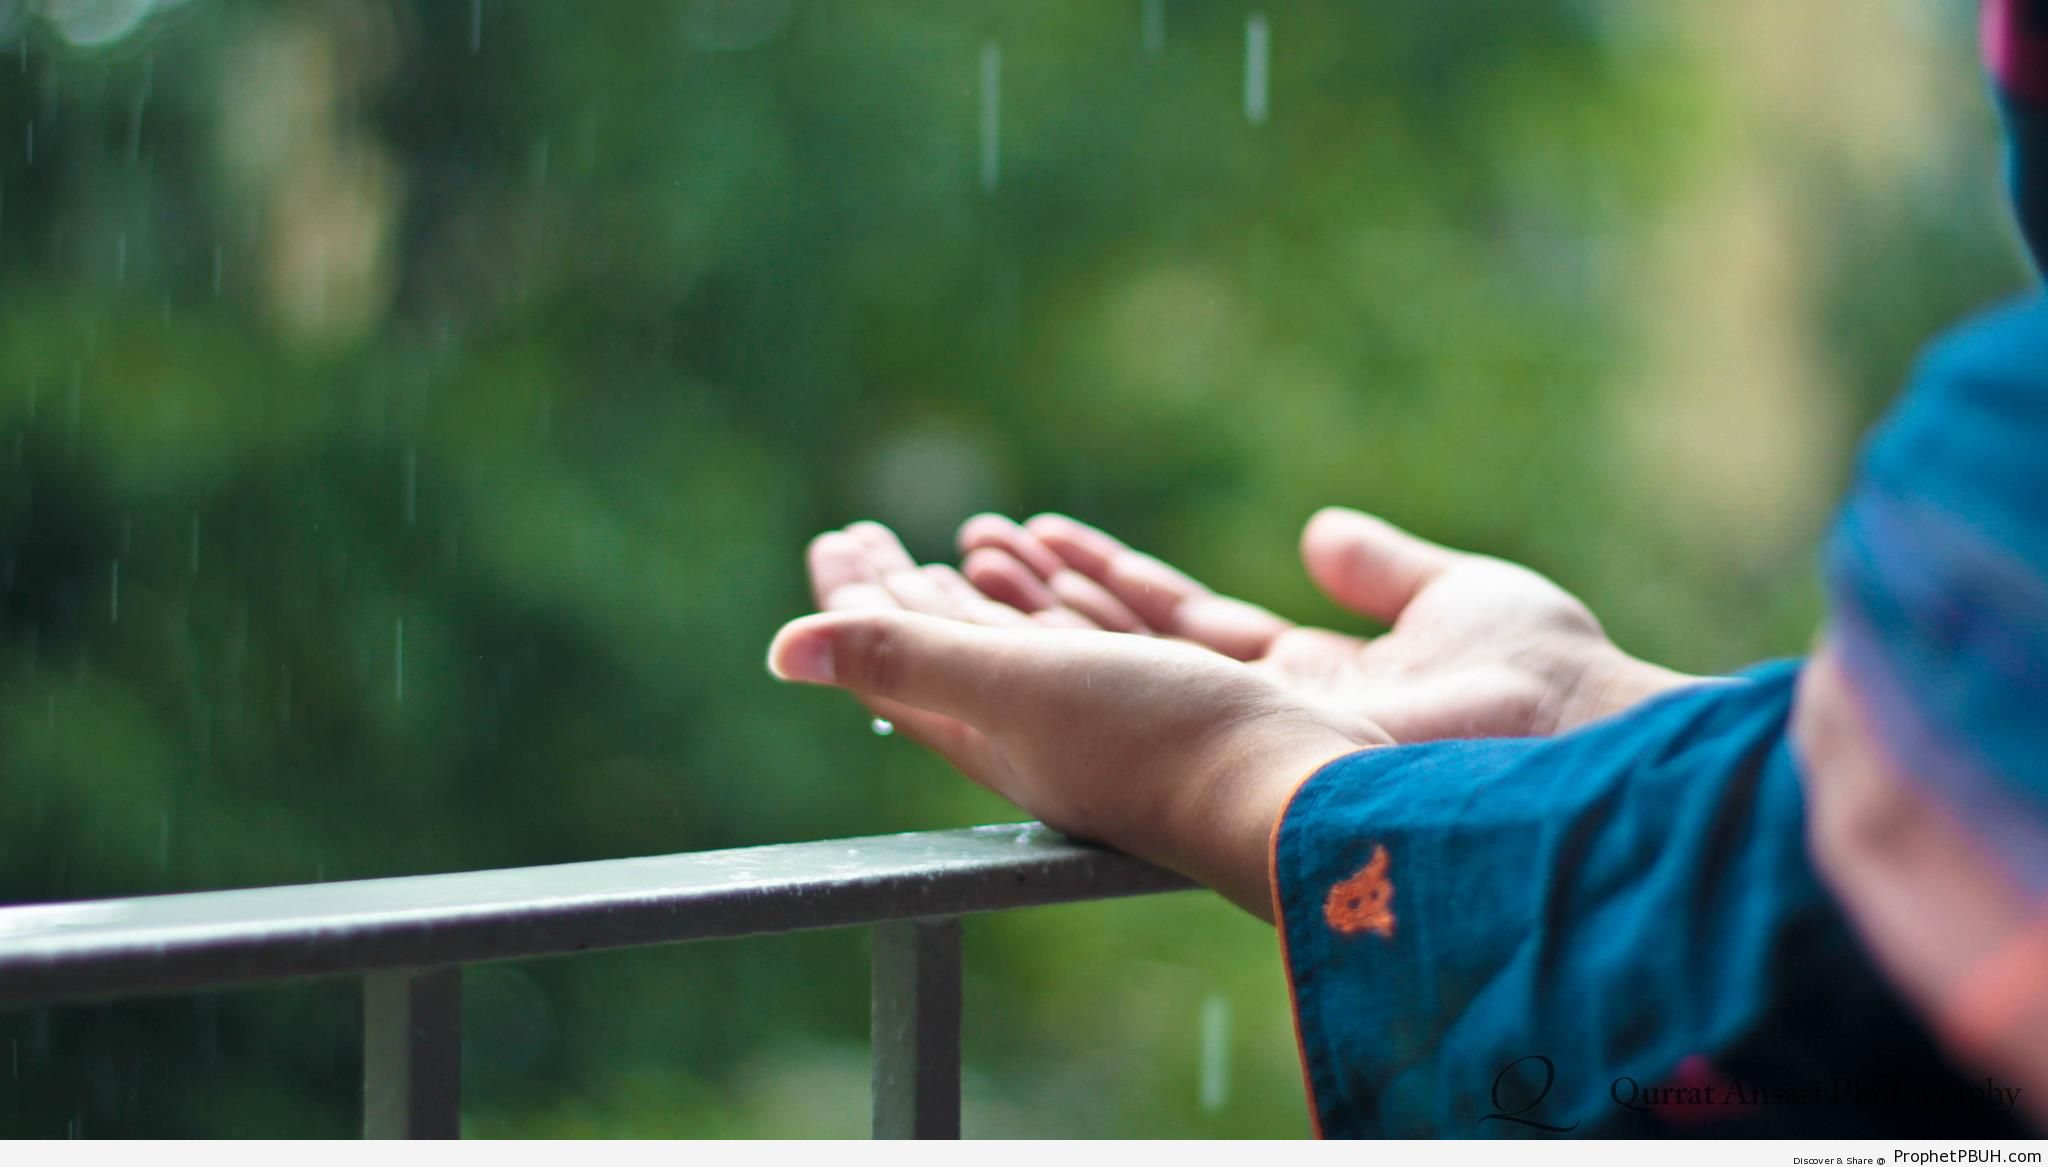 Dua in the Rain - Photos of Hands -Pictures